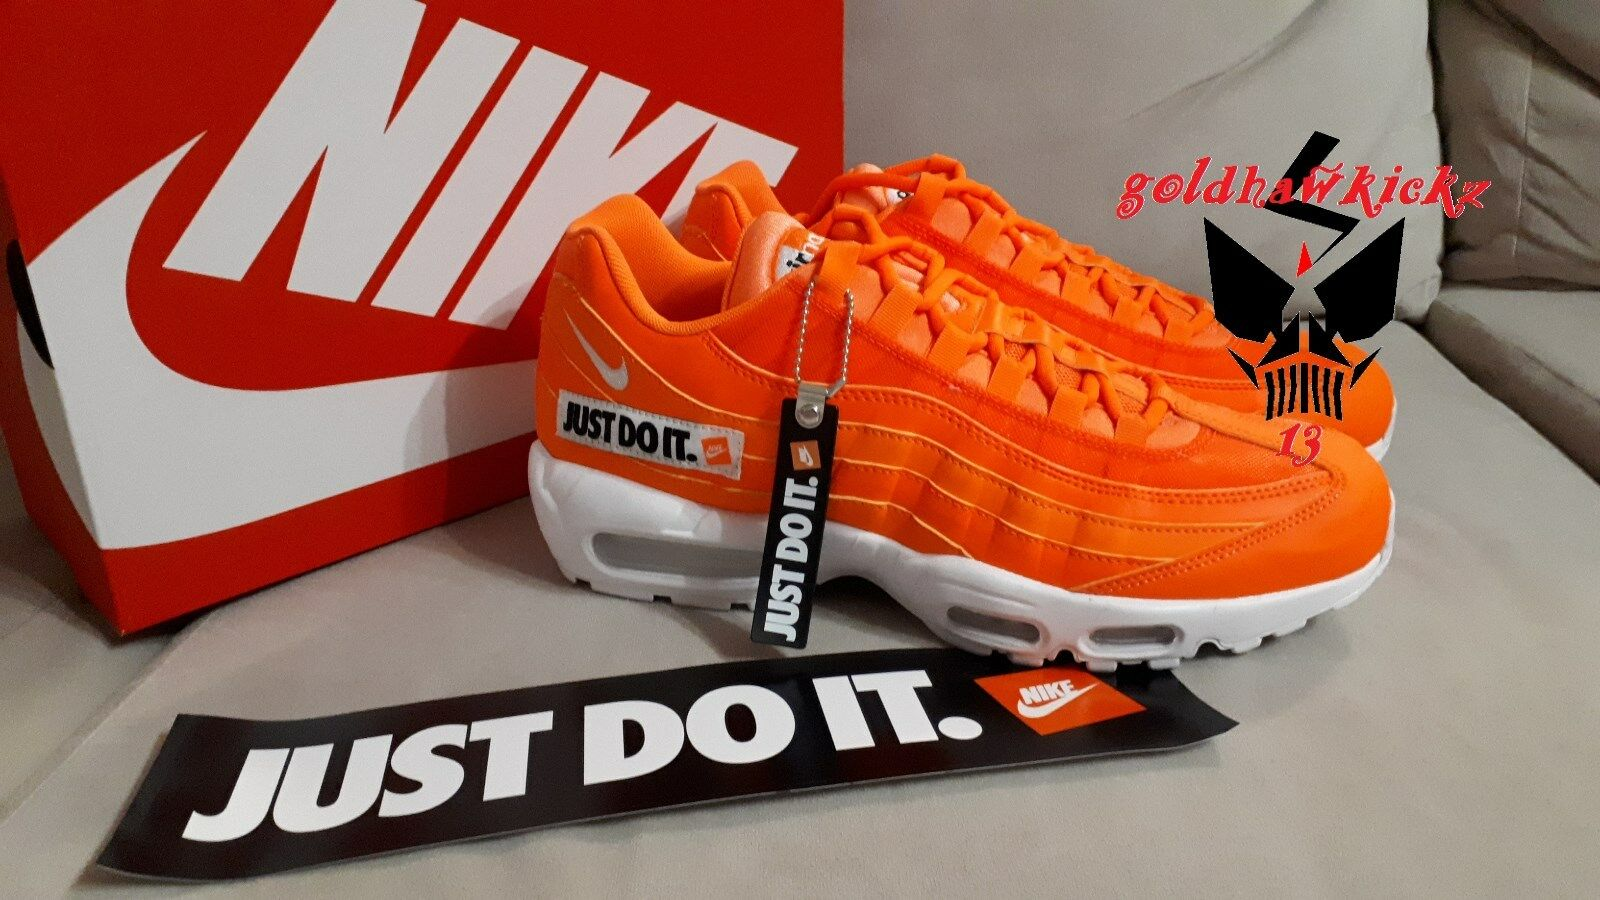 05cd2f2a01 Air Max 95 SE JUST DO IT av6246 800 total orange JDI am95 Nike  tyedbj1195-Men's Trainers